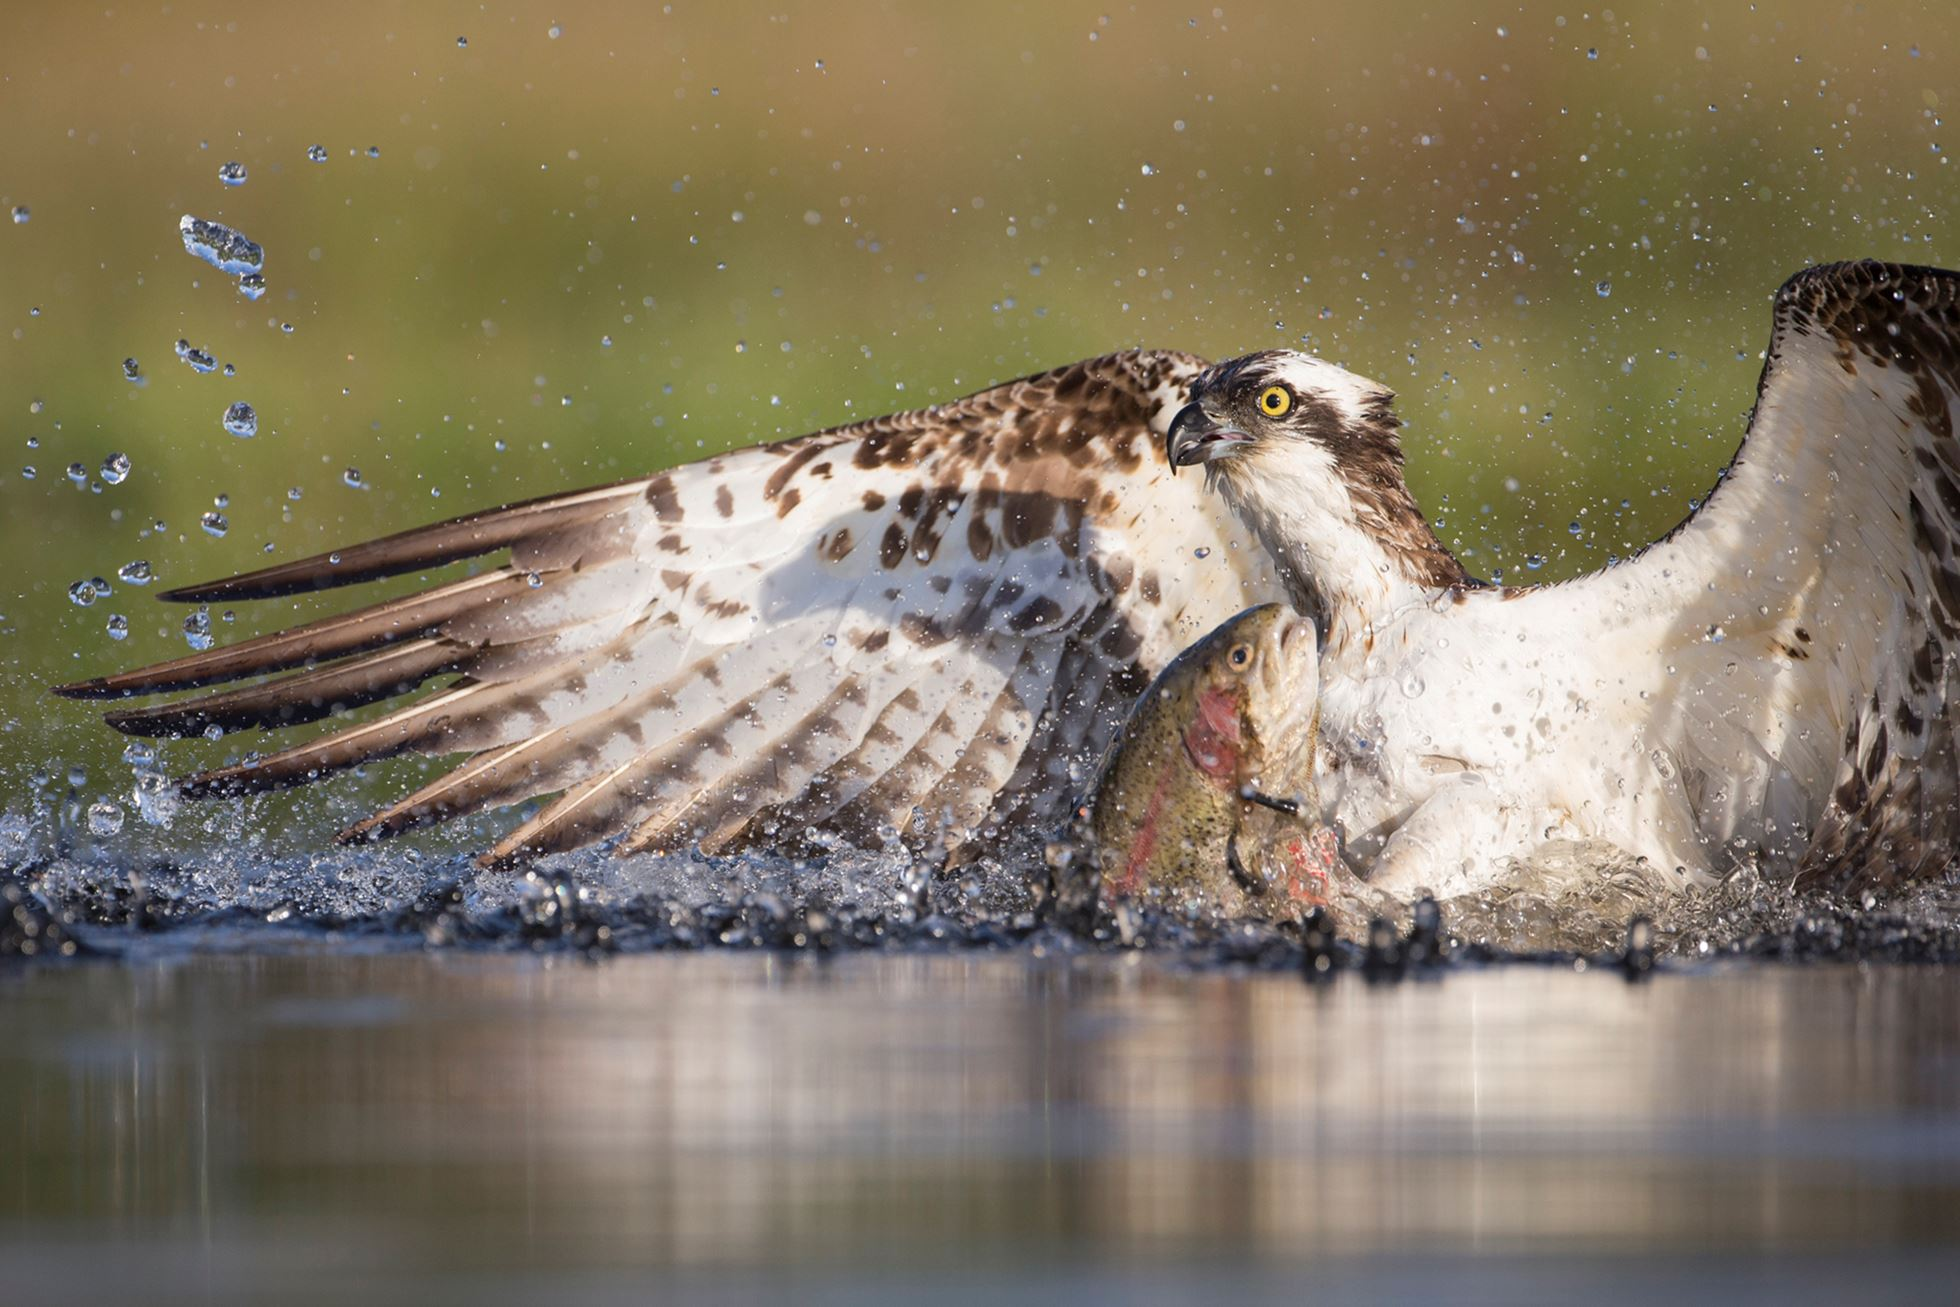 Osprey (Pandion haliaetus) fishing at dawn, Cairngorms National Park, Scotland.